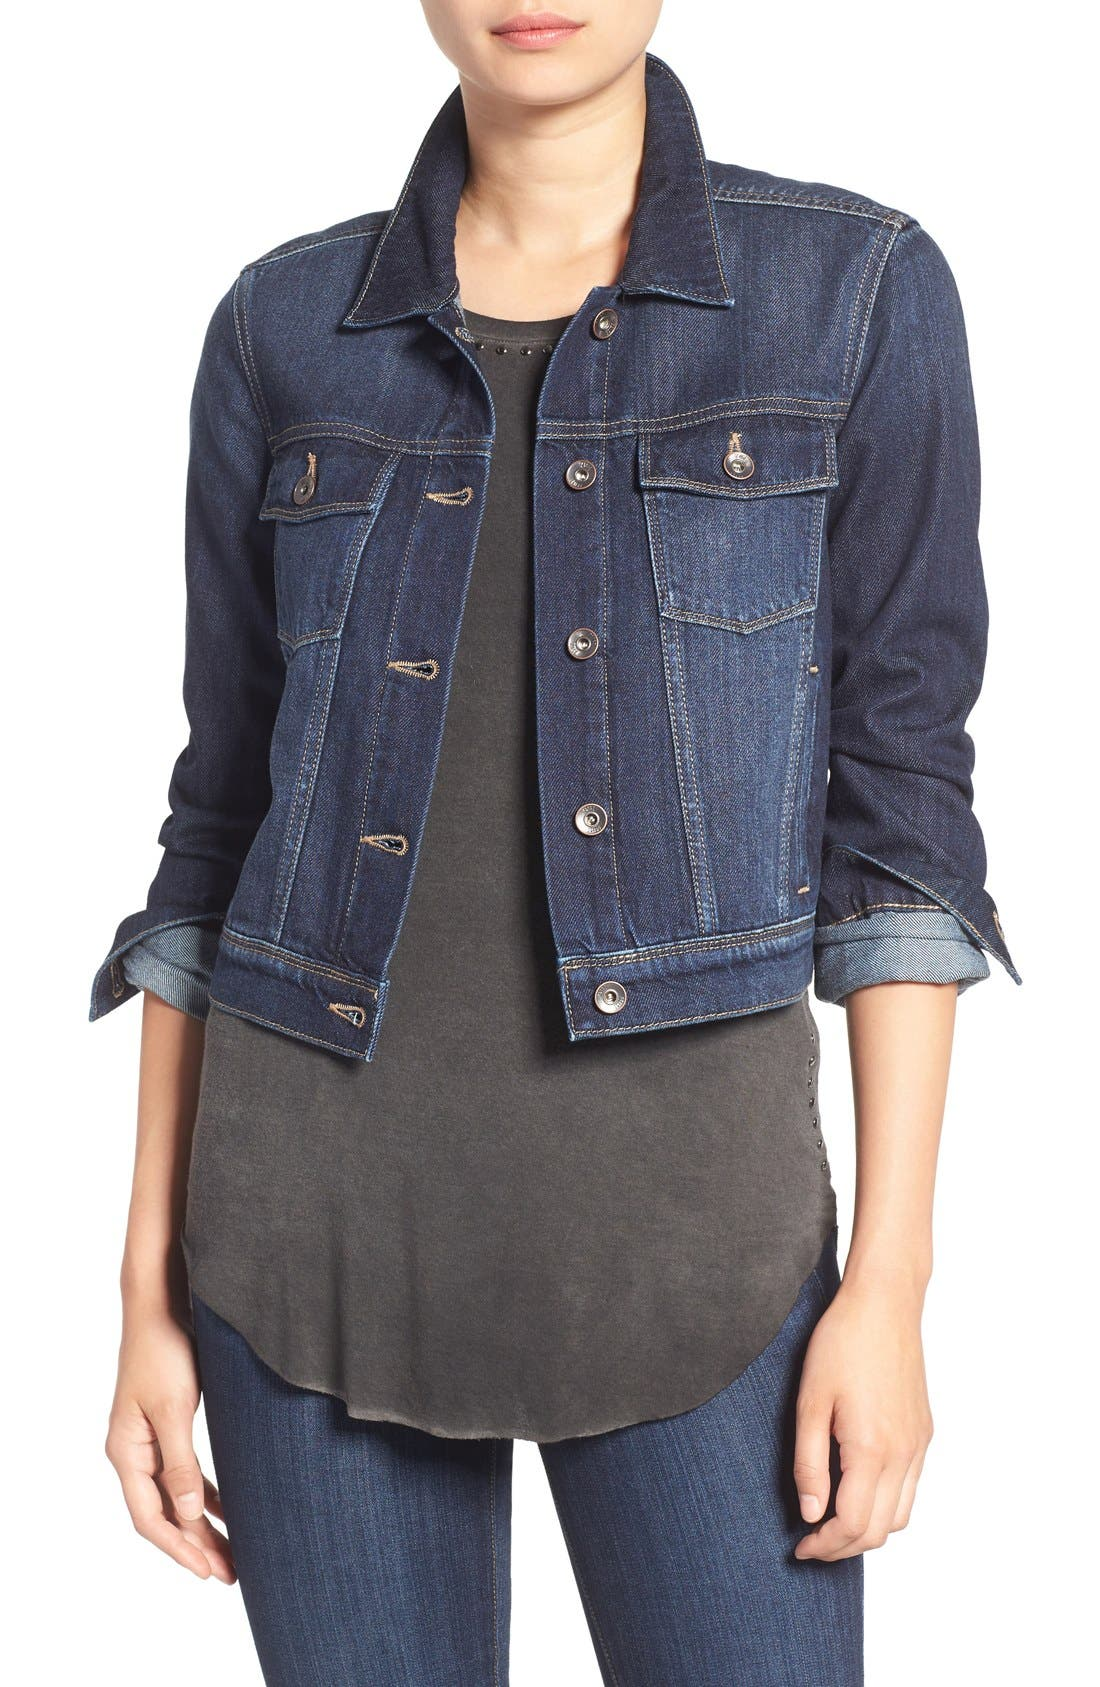 'Vivienne' Denim Jacket,                             Main thumbnail 1, color,                             400